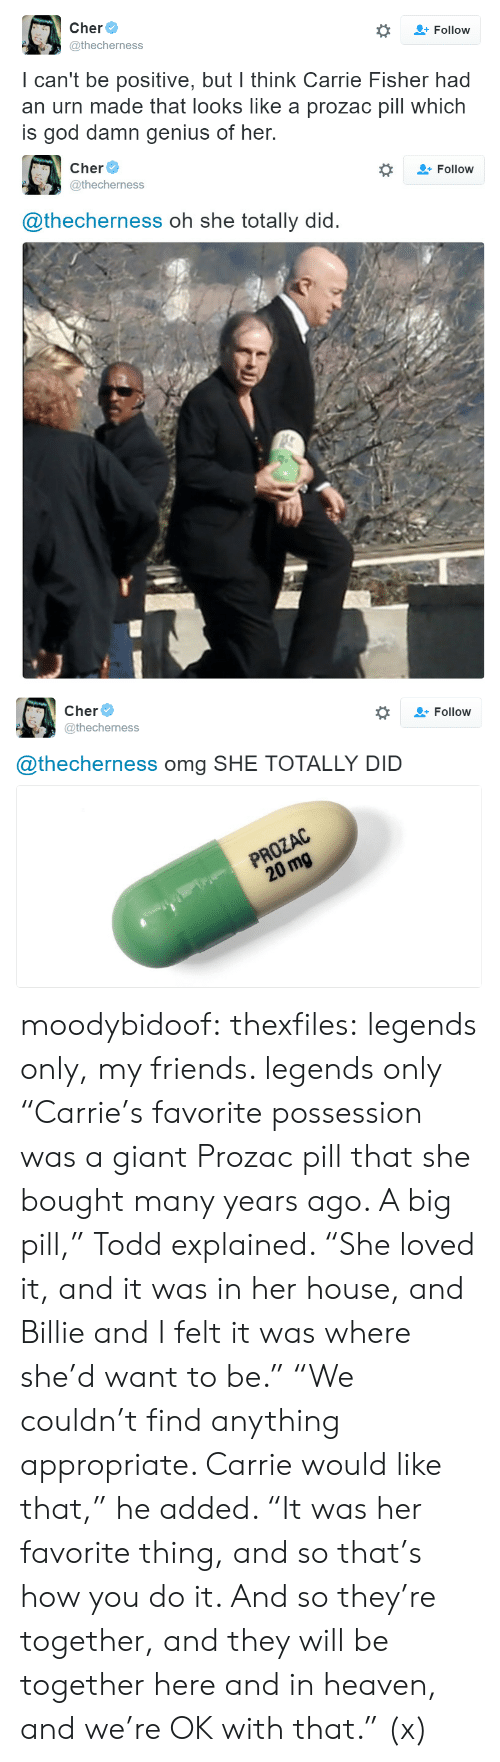 """urn: Follow  @thecherness  I can't be positive, but I think Carrie Fisher had  an urn made that looks like a prozac pill which  is god damn genius of her.   Cher  @thecherness  #  Follow  @thecherness oh she totally did.   Cher  @thecherness  *  Follow  @thecherness omg SHE TOTALLY DID  PROZAC  20 mg moodybidoof: thexfiles: legends only, my friends. legends only  """"Carrie's favorite possession was a giant Prozac pill that she bought many years ago. A big pill,"""" Todd explained. """"She loved it, and it was in her house, and Billie and I felt it was where she'd want to be."""" """"We couldn't find anything appropriate. Carrie would like that,"""" he added. """"It was her favorite thing, and so that's how you do it. And so they're together, and they will be together here and in heaven, and we're OK with that."""" (x)"""